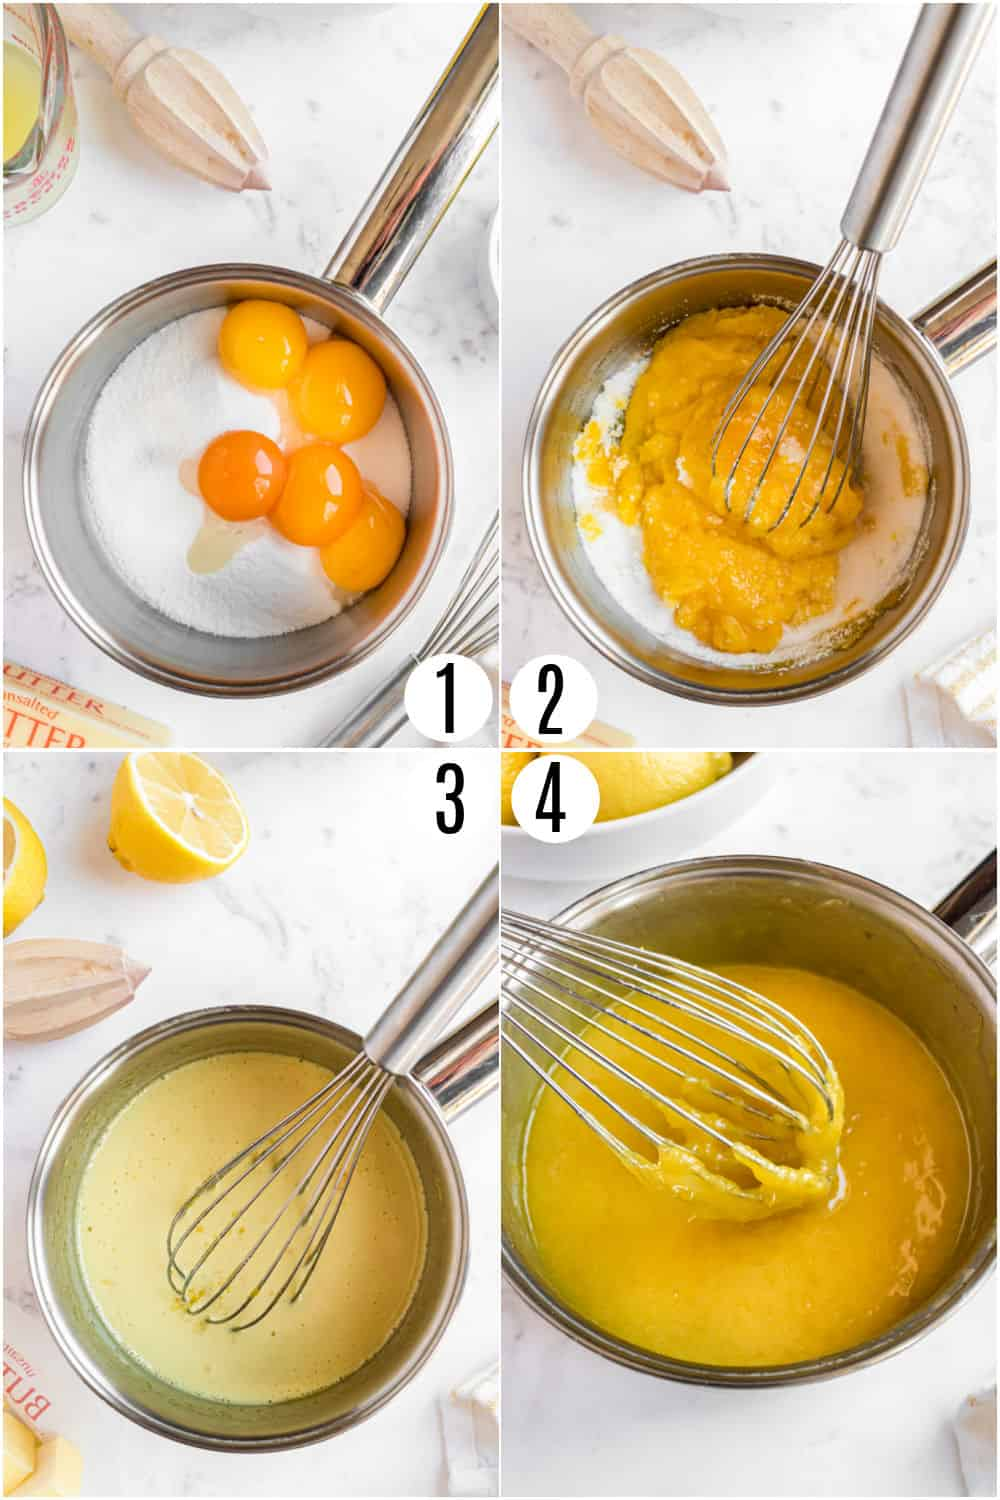 Step by step photos showing how to make homemade lemon curd.